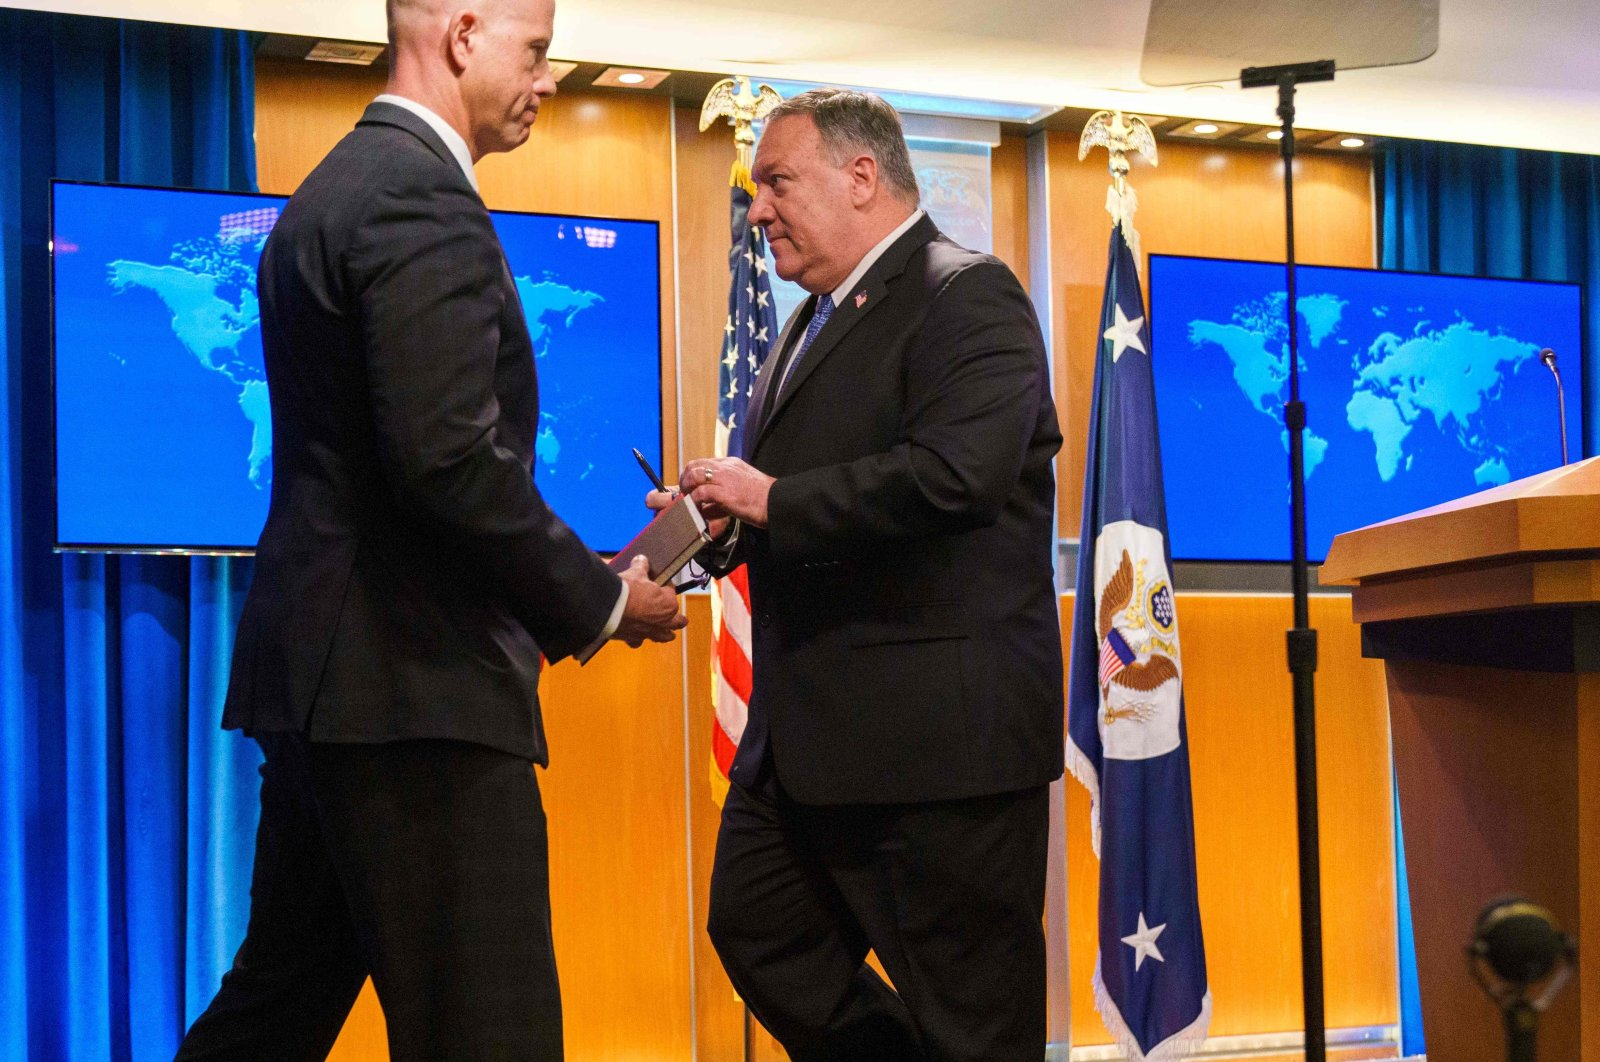 U.S. Secretary of State Mike Pompeo (R) leaves the podium after giving a media briefing at the State Department in Washington, D.C., Nov. 10, 2020. (AFP Photo)